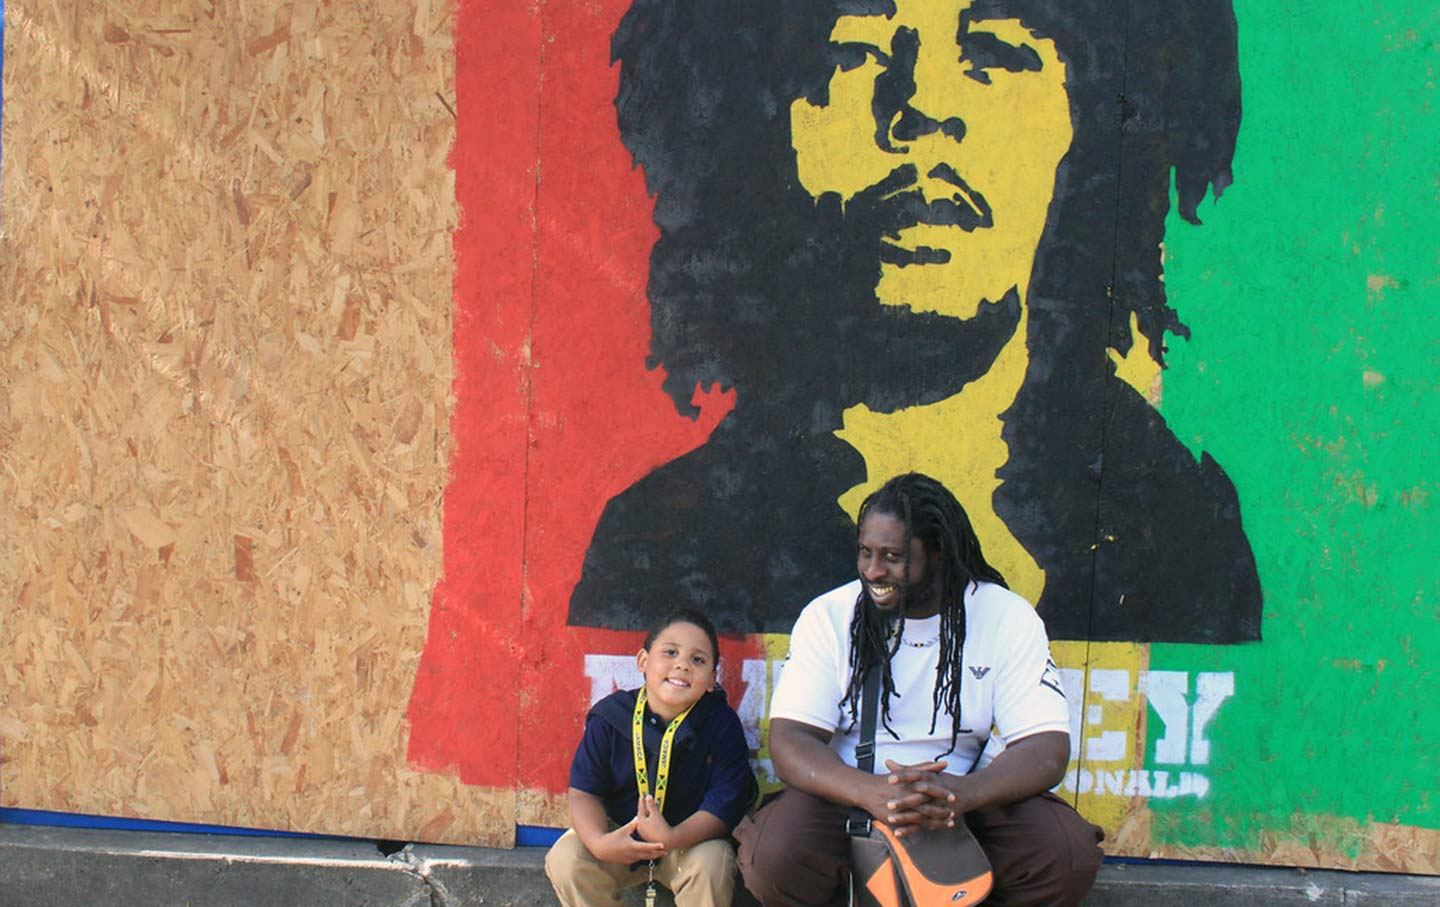 Jamaica Is Using Bob Marley's Legacy to Market Austerity | The Nation